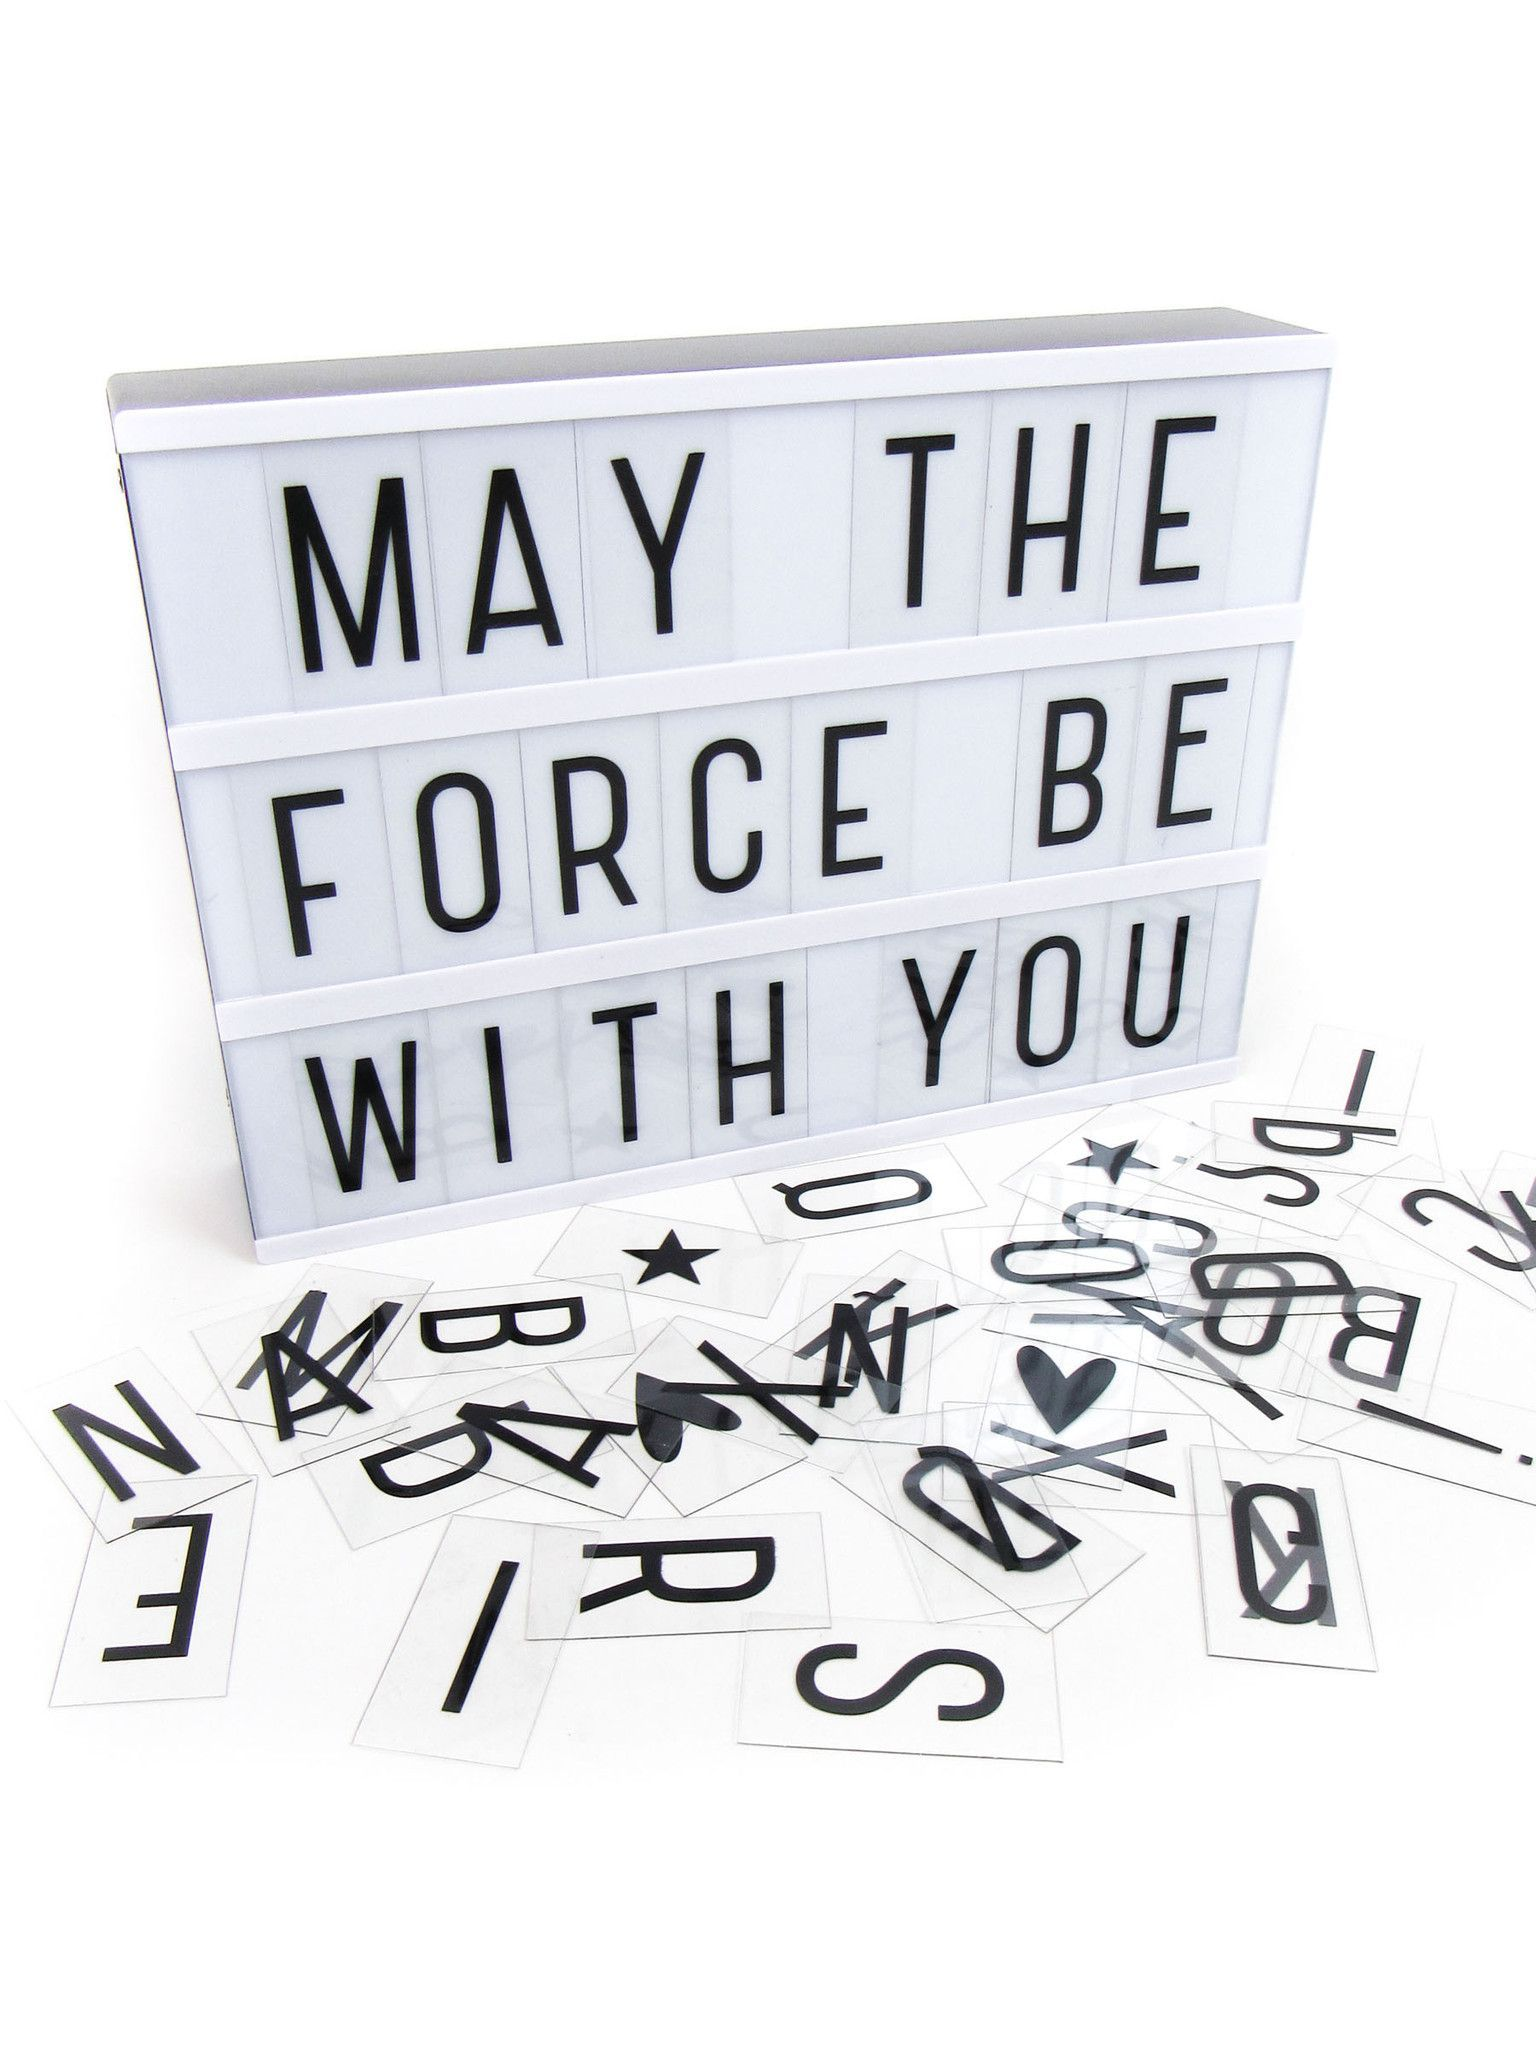 Decorative battery-powered LED lightbox with 85 letters and symbols for making your very own fun messages. You can change the messages as often as you like simply by sliding the letters, which are pri